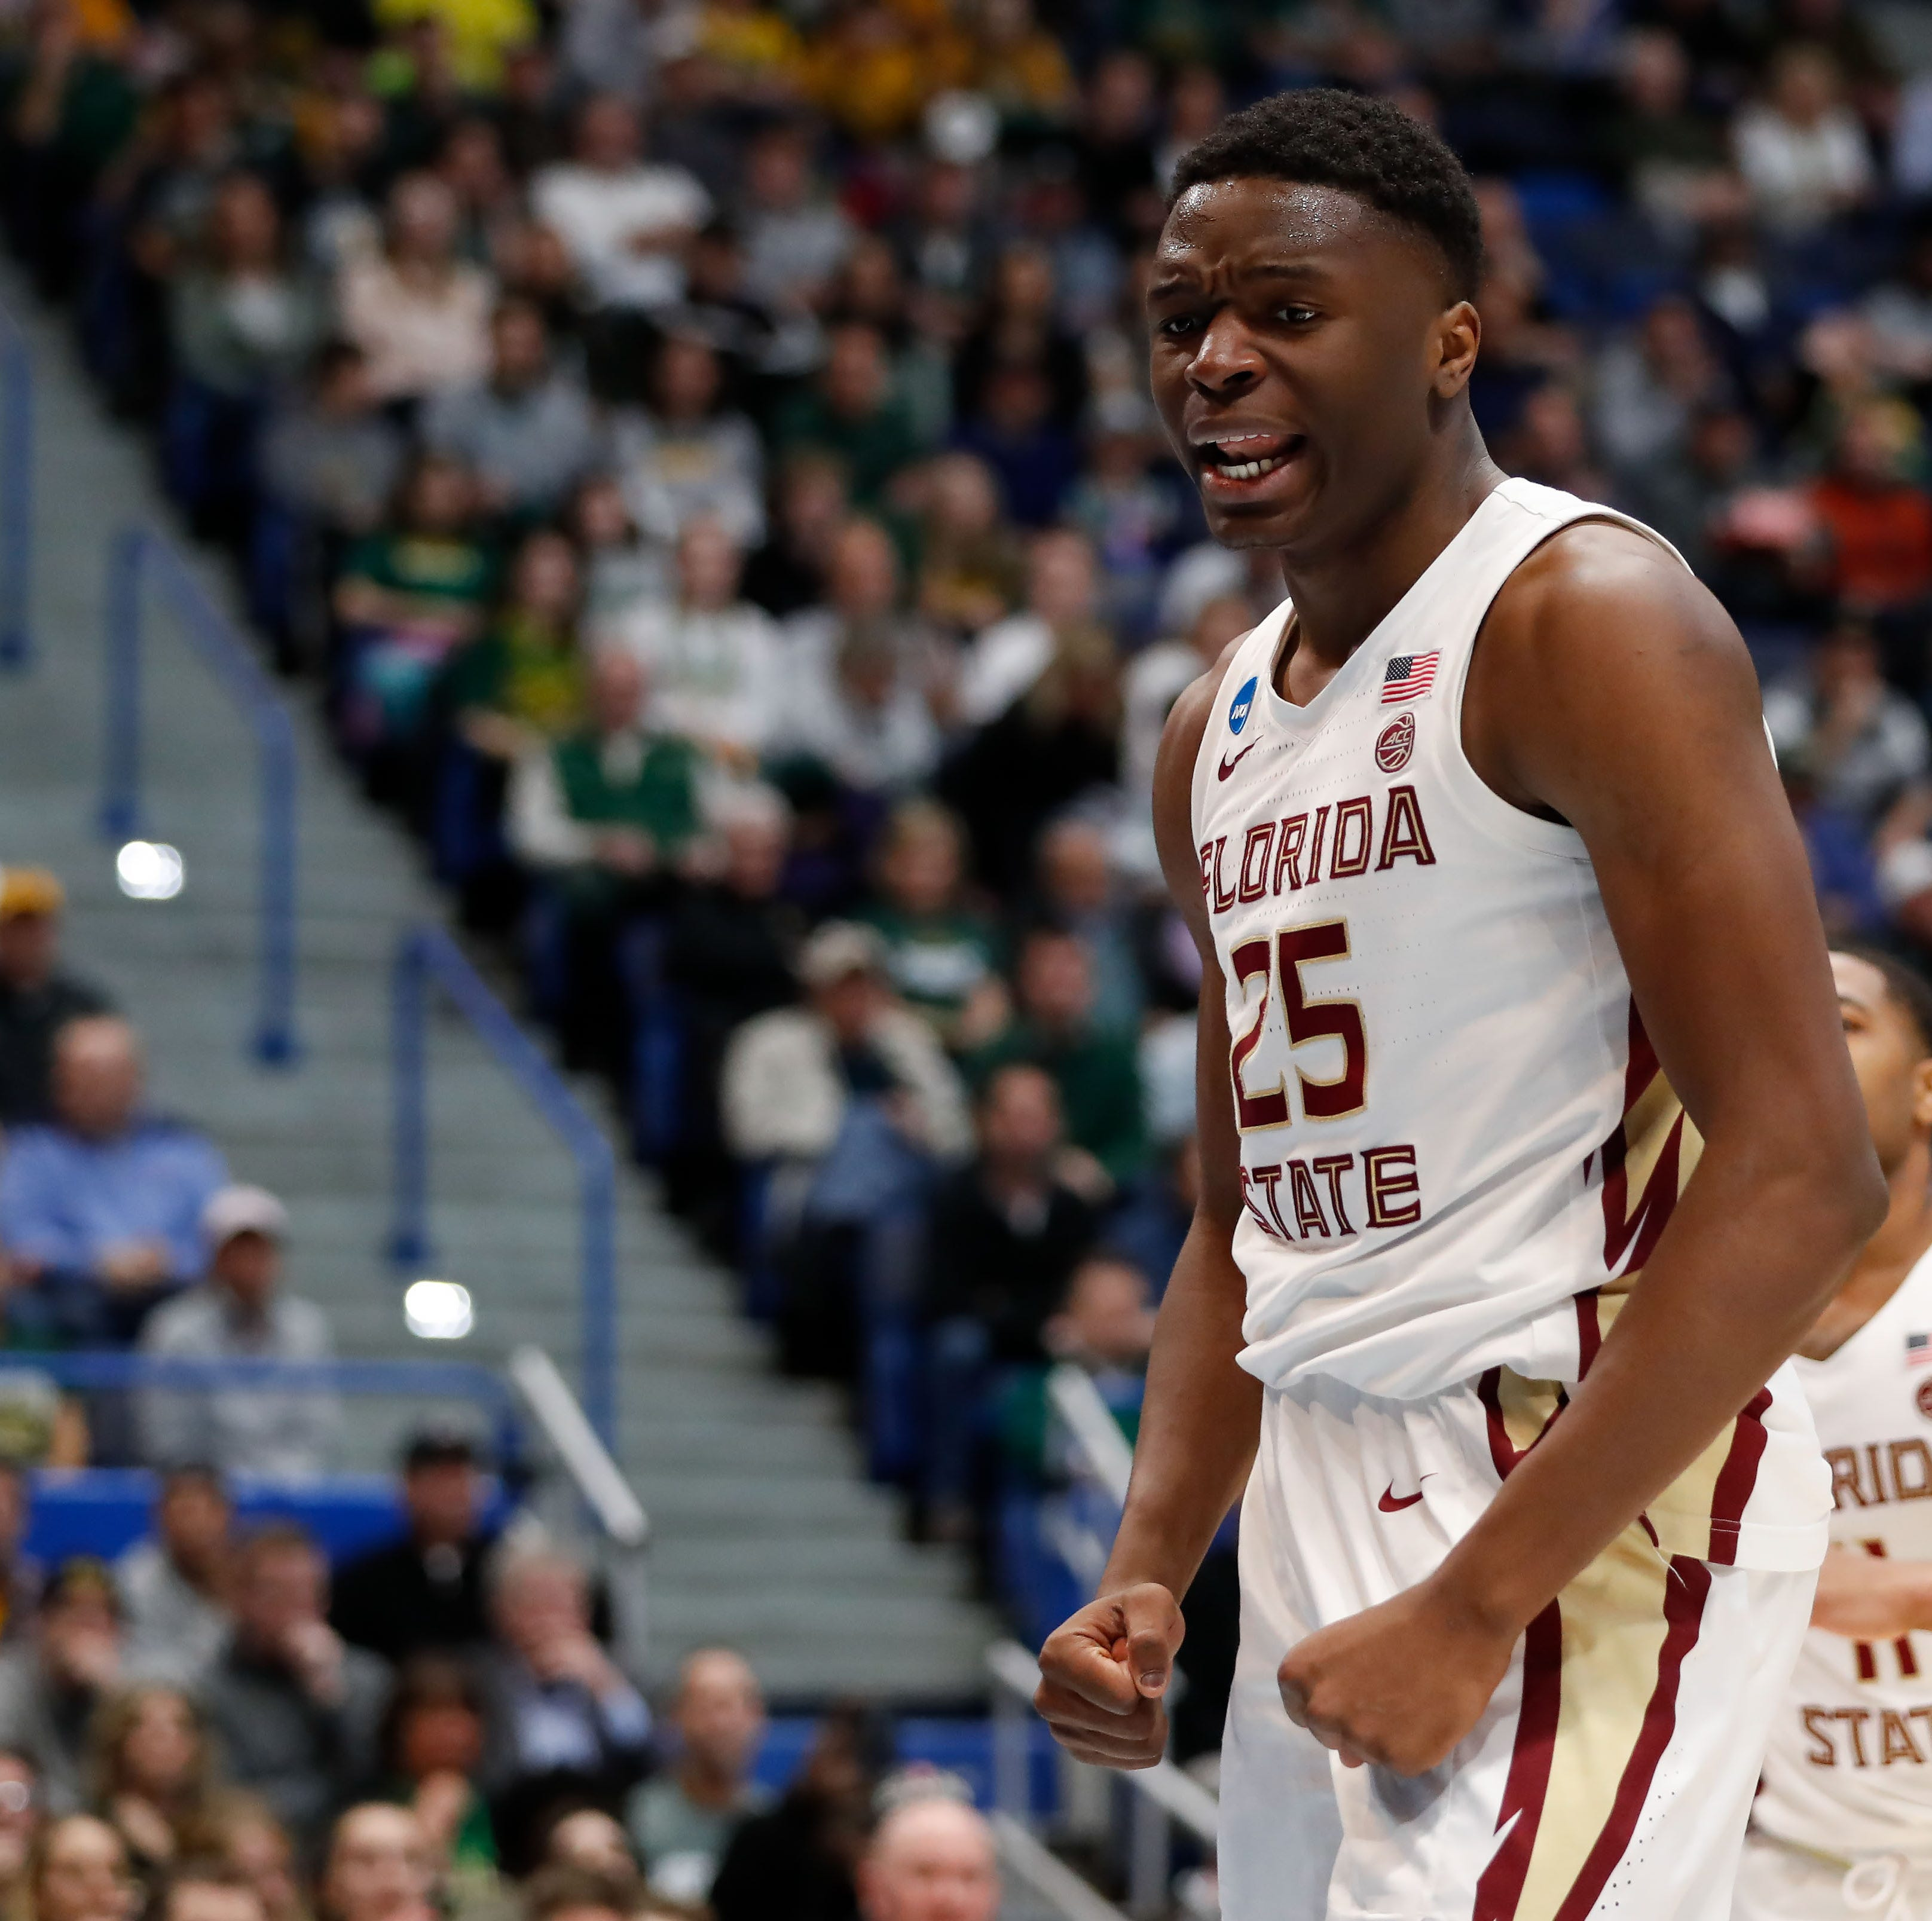 March Madness: Twitter roasts Temetrius 'Ja' Morant's defense as FSU rolls Murray State